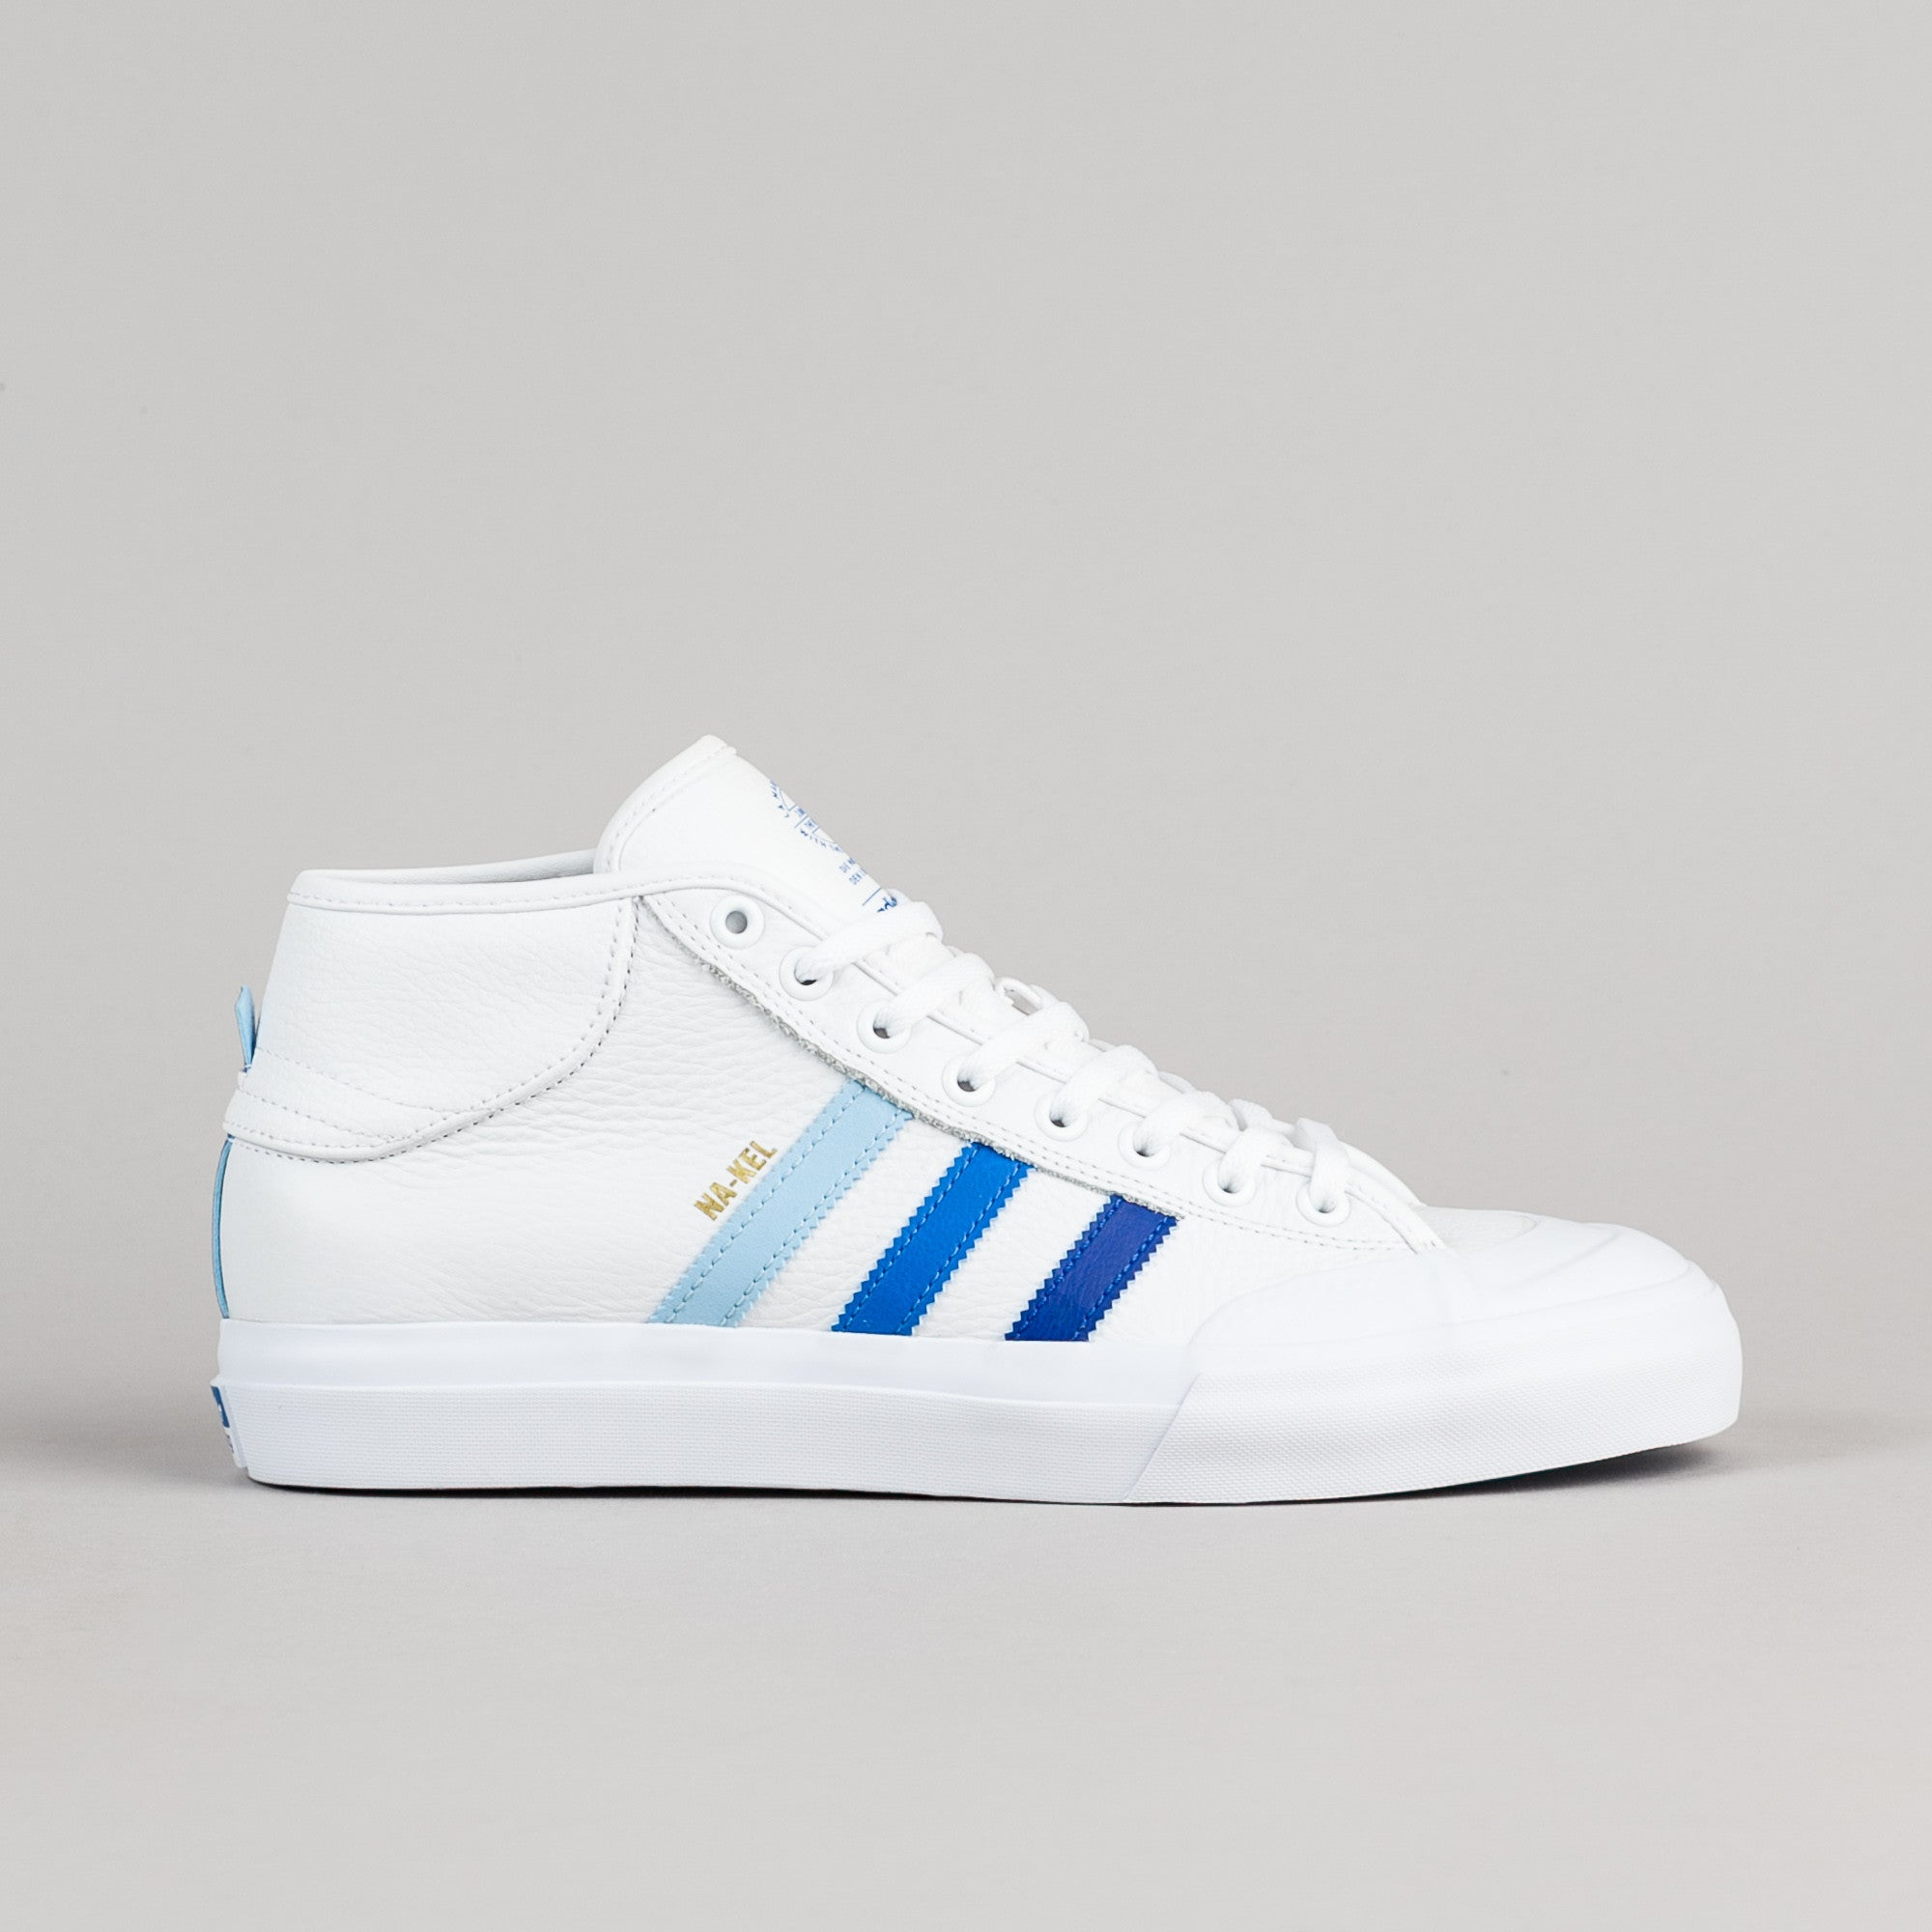 Adidas Na-Kel Matchcourt Mid ADV Shoes - White / Collegiate Royal / Bluebird